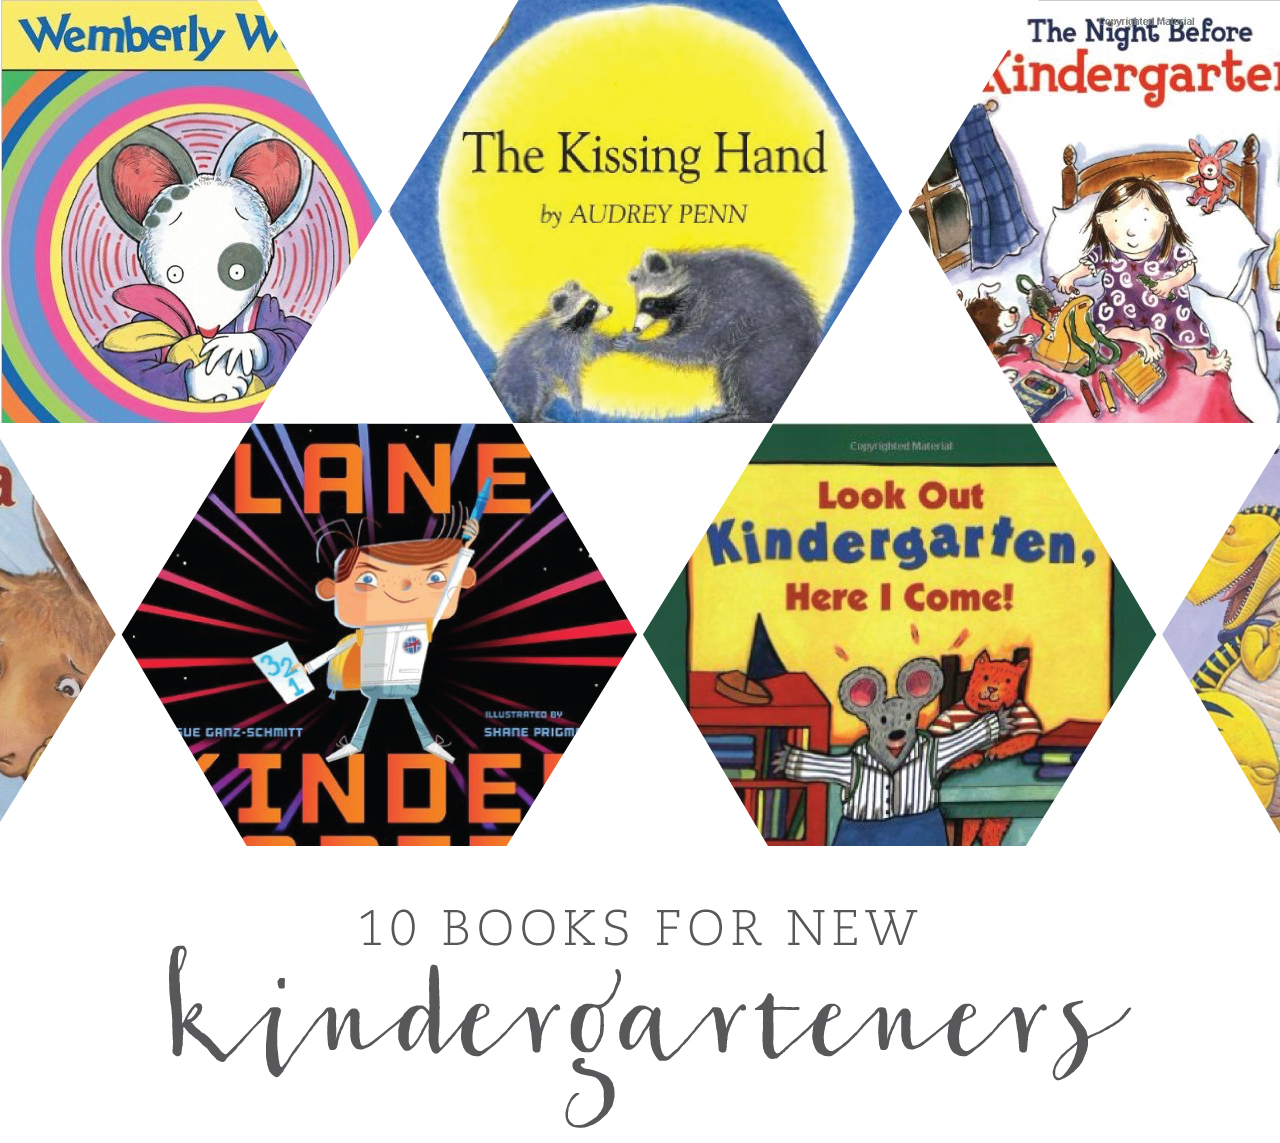 10 Books for New Kindergarteners